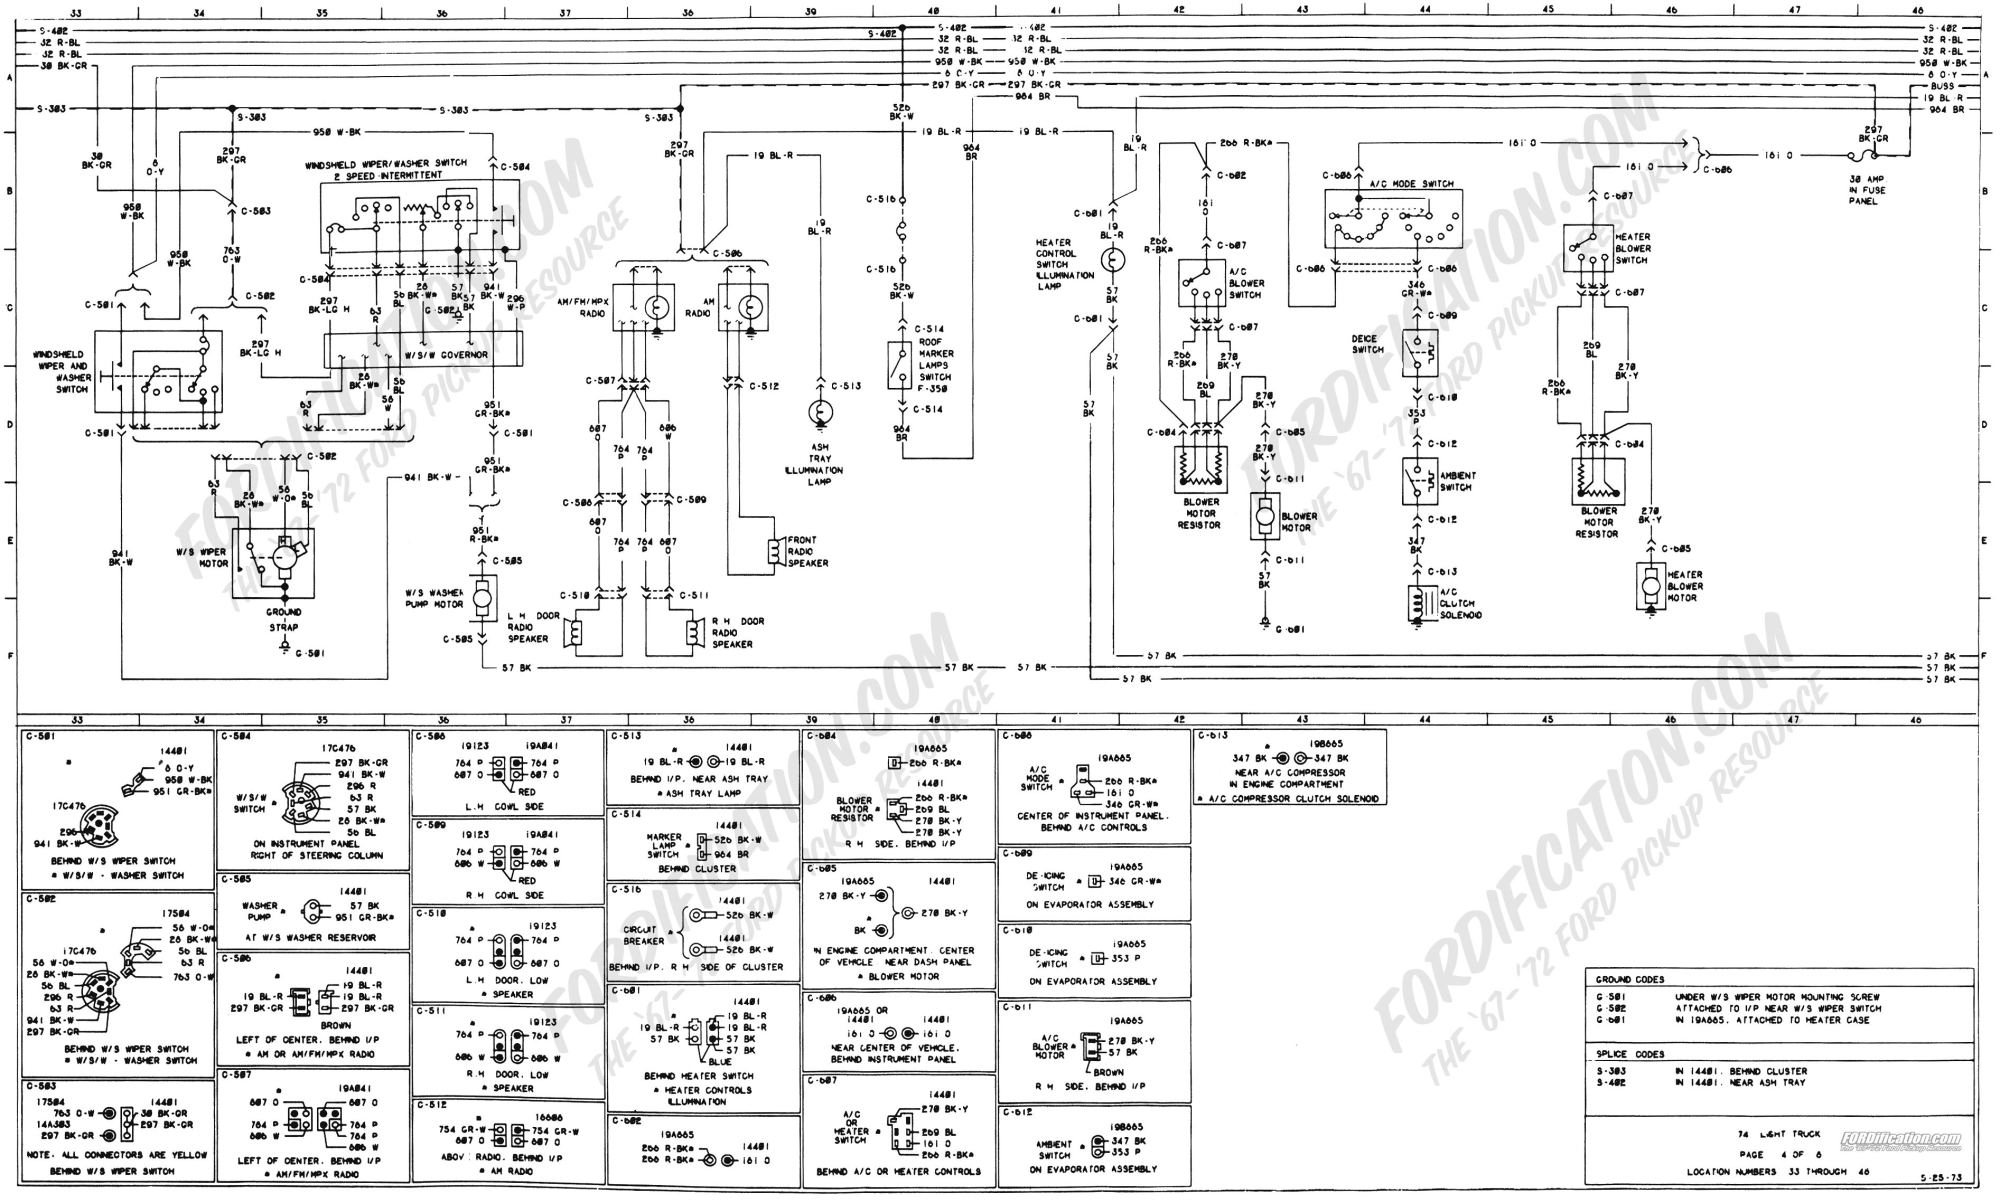 hight resolution of ford f650 wiring schematic wiring diagram blog 2000 ford f650 wiring schematic 2002 ford f650 wiring